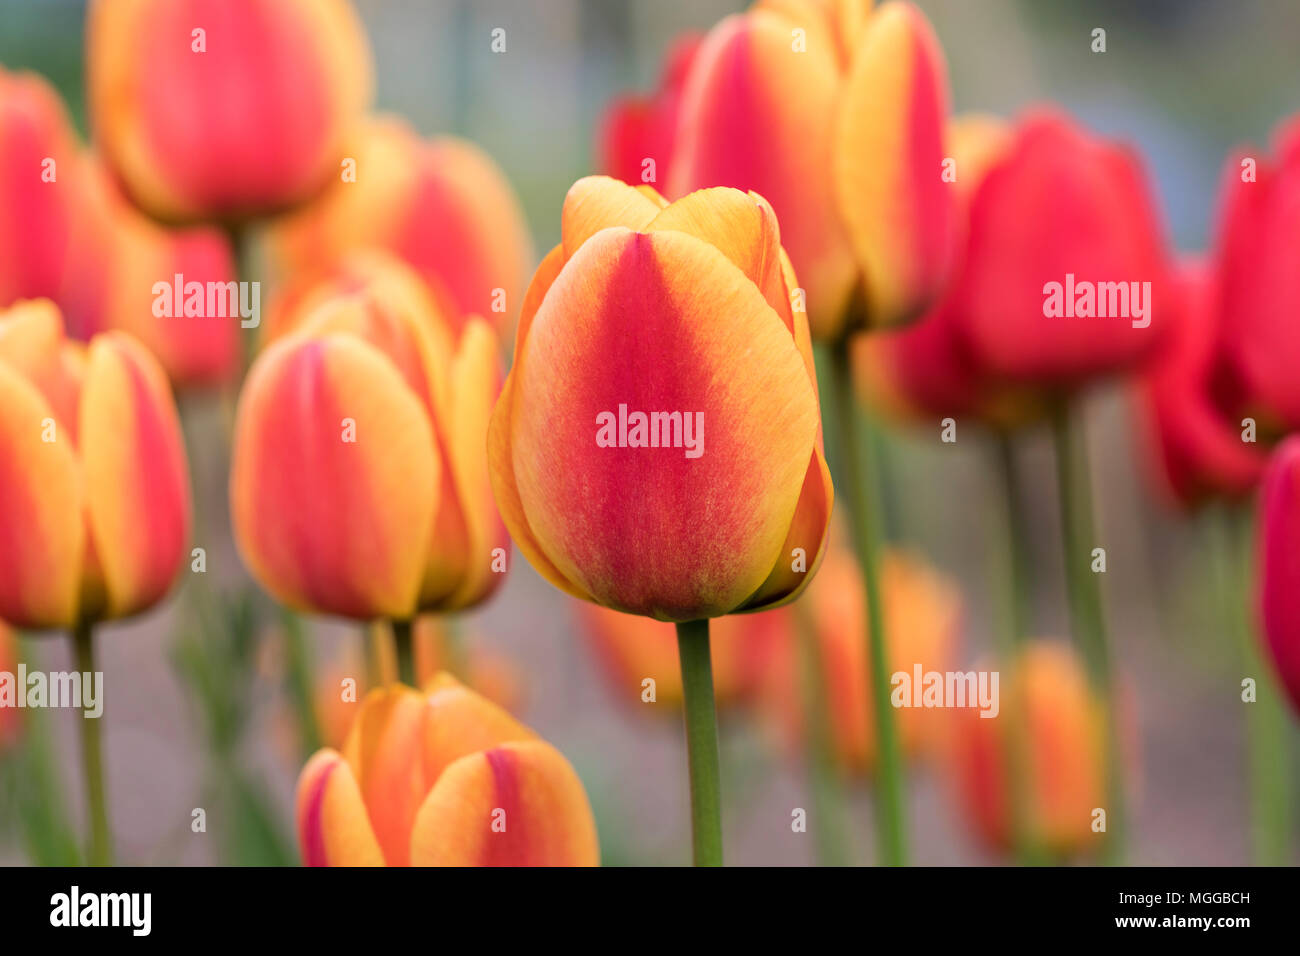 Close up of bright orange and red tulips flowering in a spring garden border in the UK Stock Photo